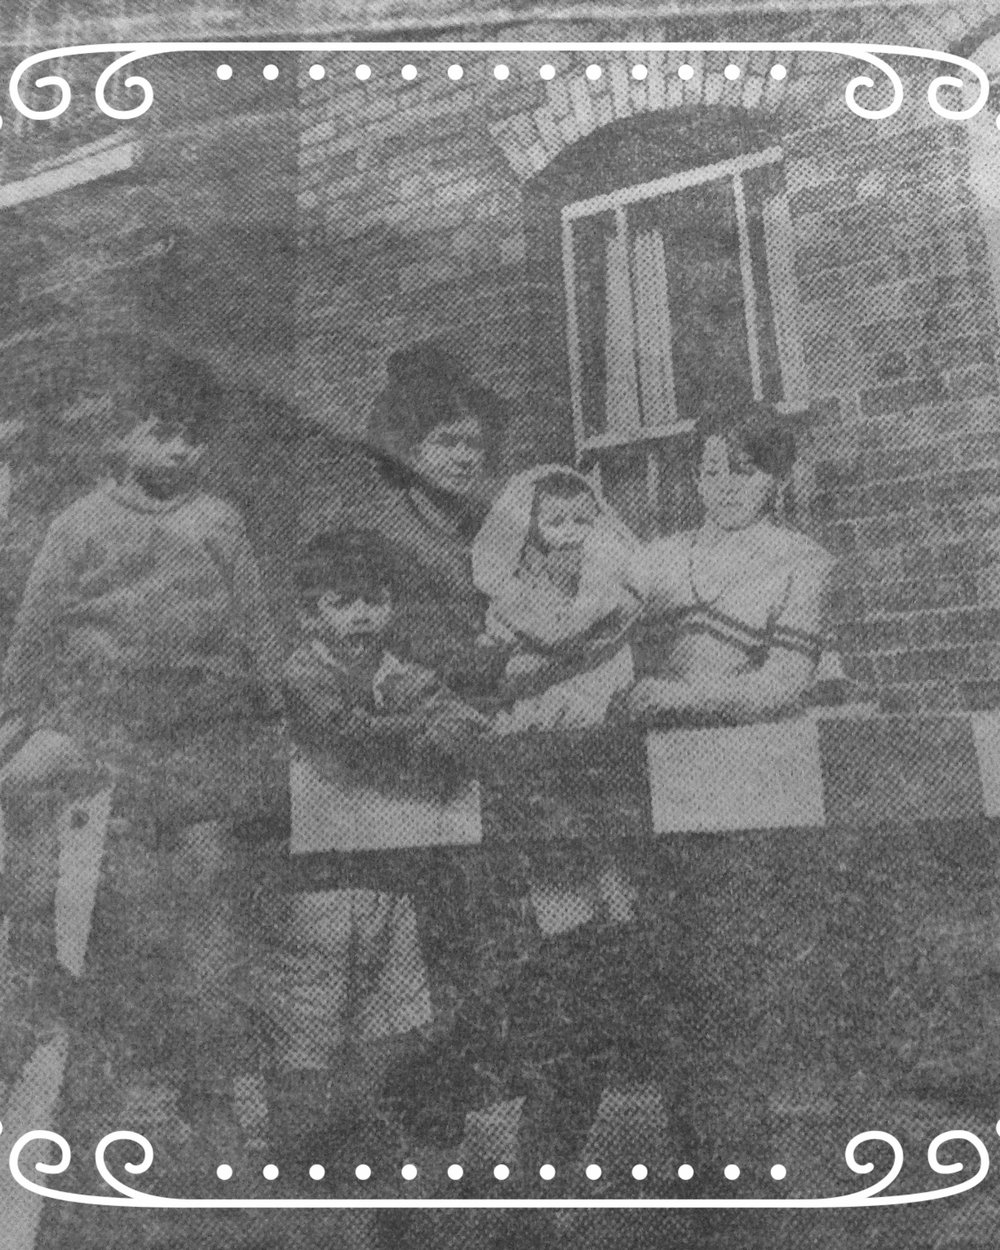 HOUSE OF FEAR 68 PEEL STREET.  (cutting from the Birmingham Mail )